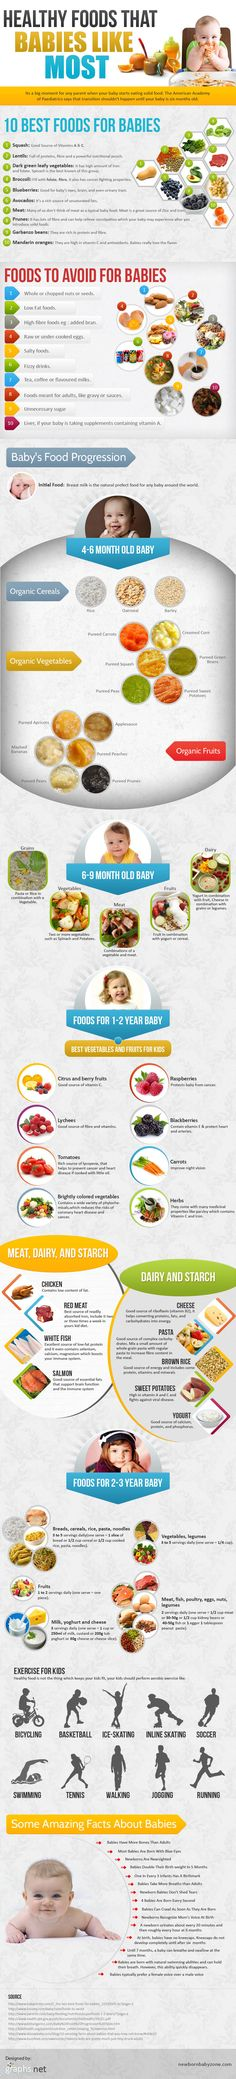 Healthy Foods That Babies Like Most (Infographic) Don't agree with the grain at such a young age but still gives some good ideas